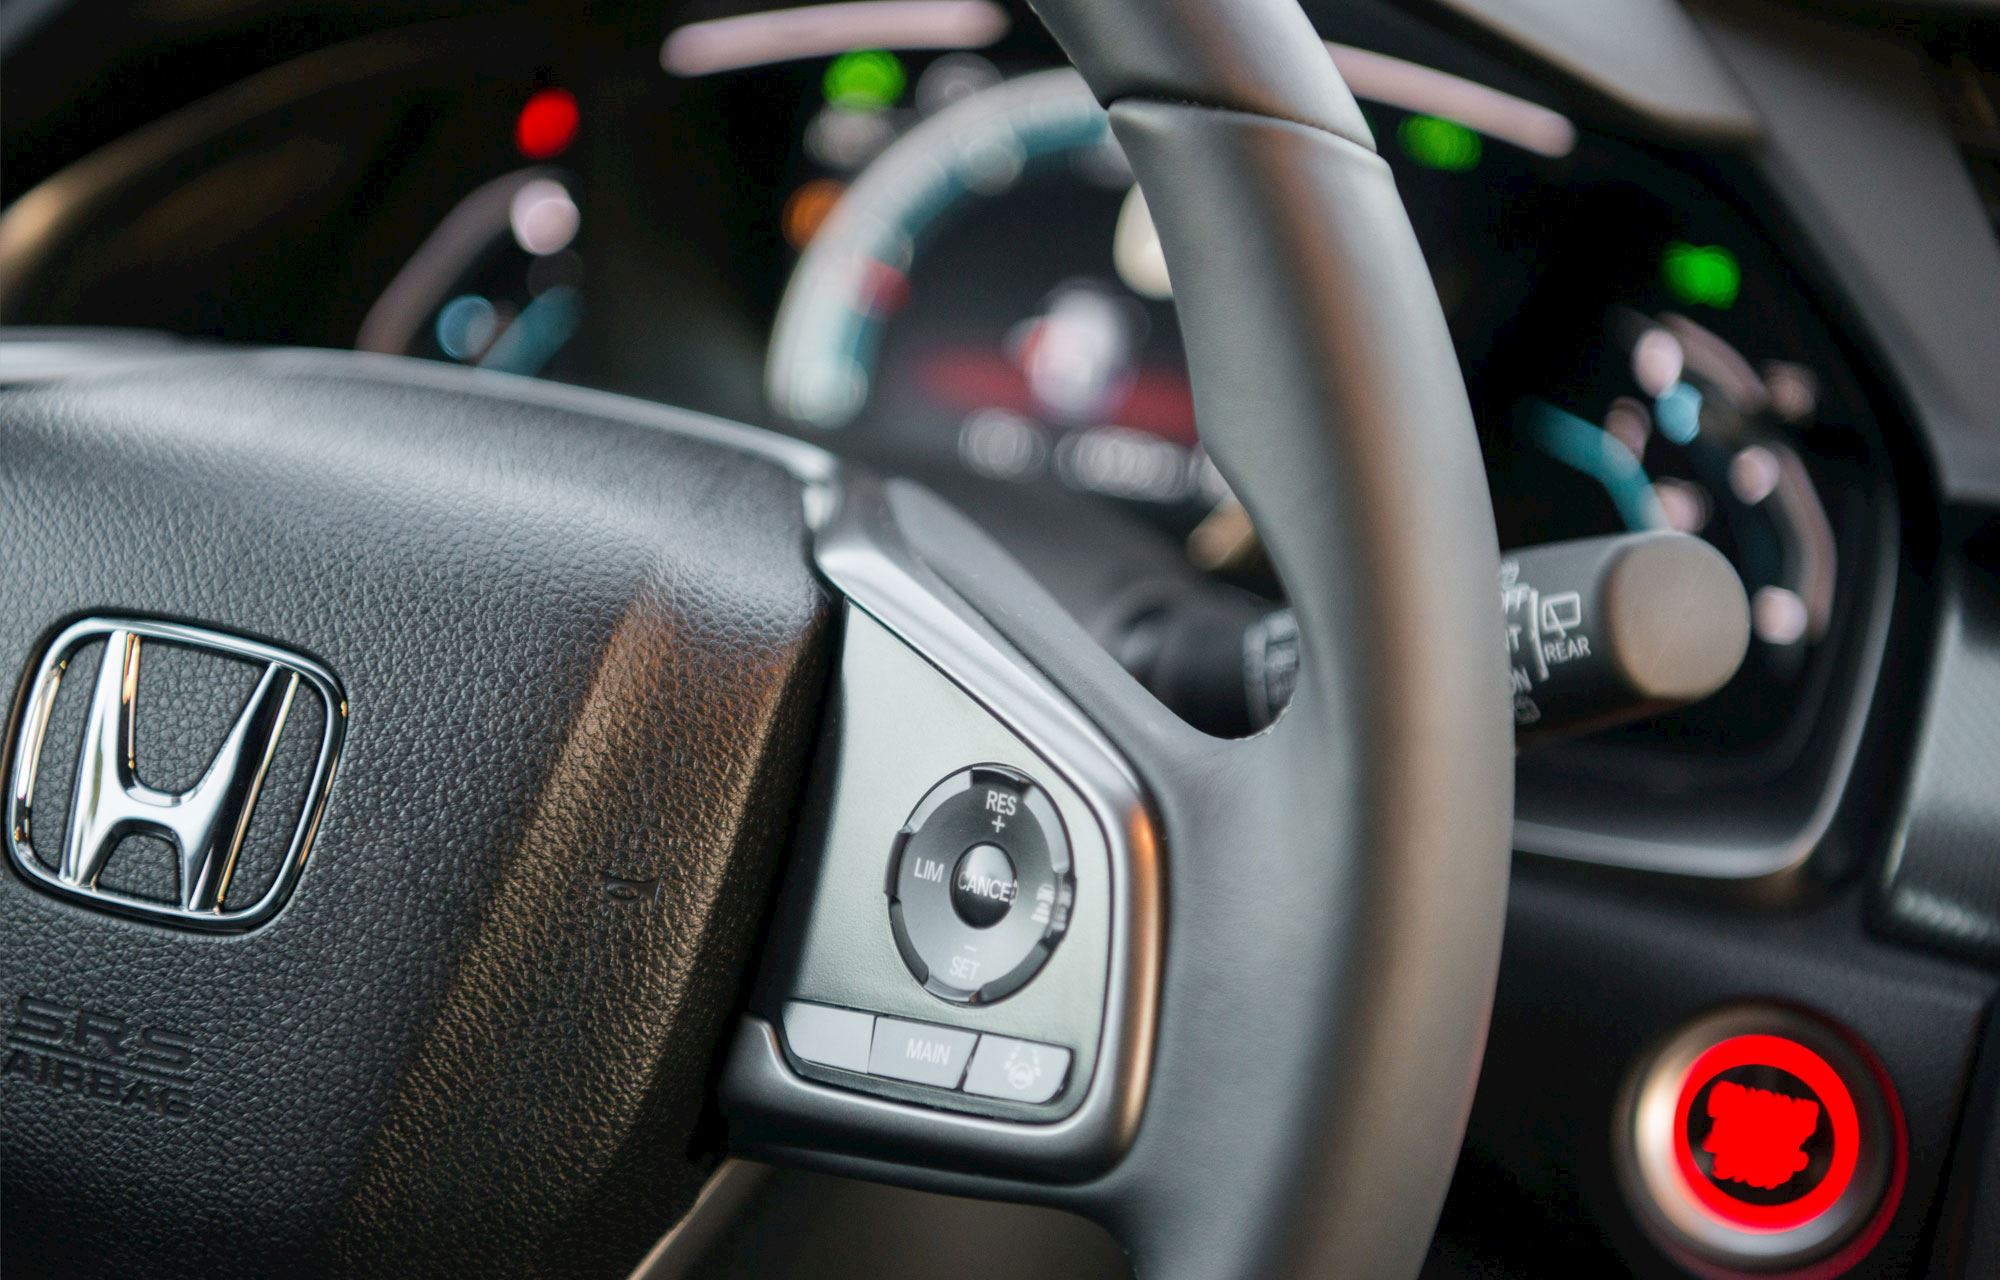 Know Your Honda Dashboard Warning Lights Automatic Headlight Reminder What Do They Mean